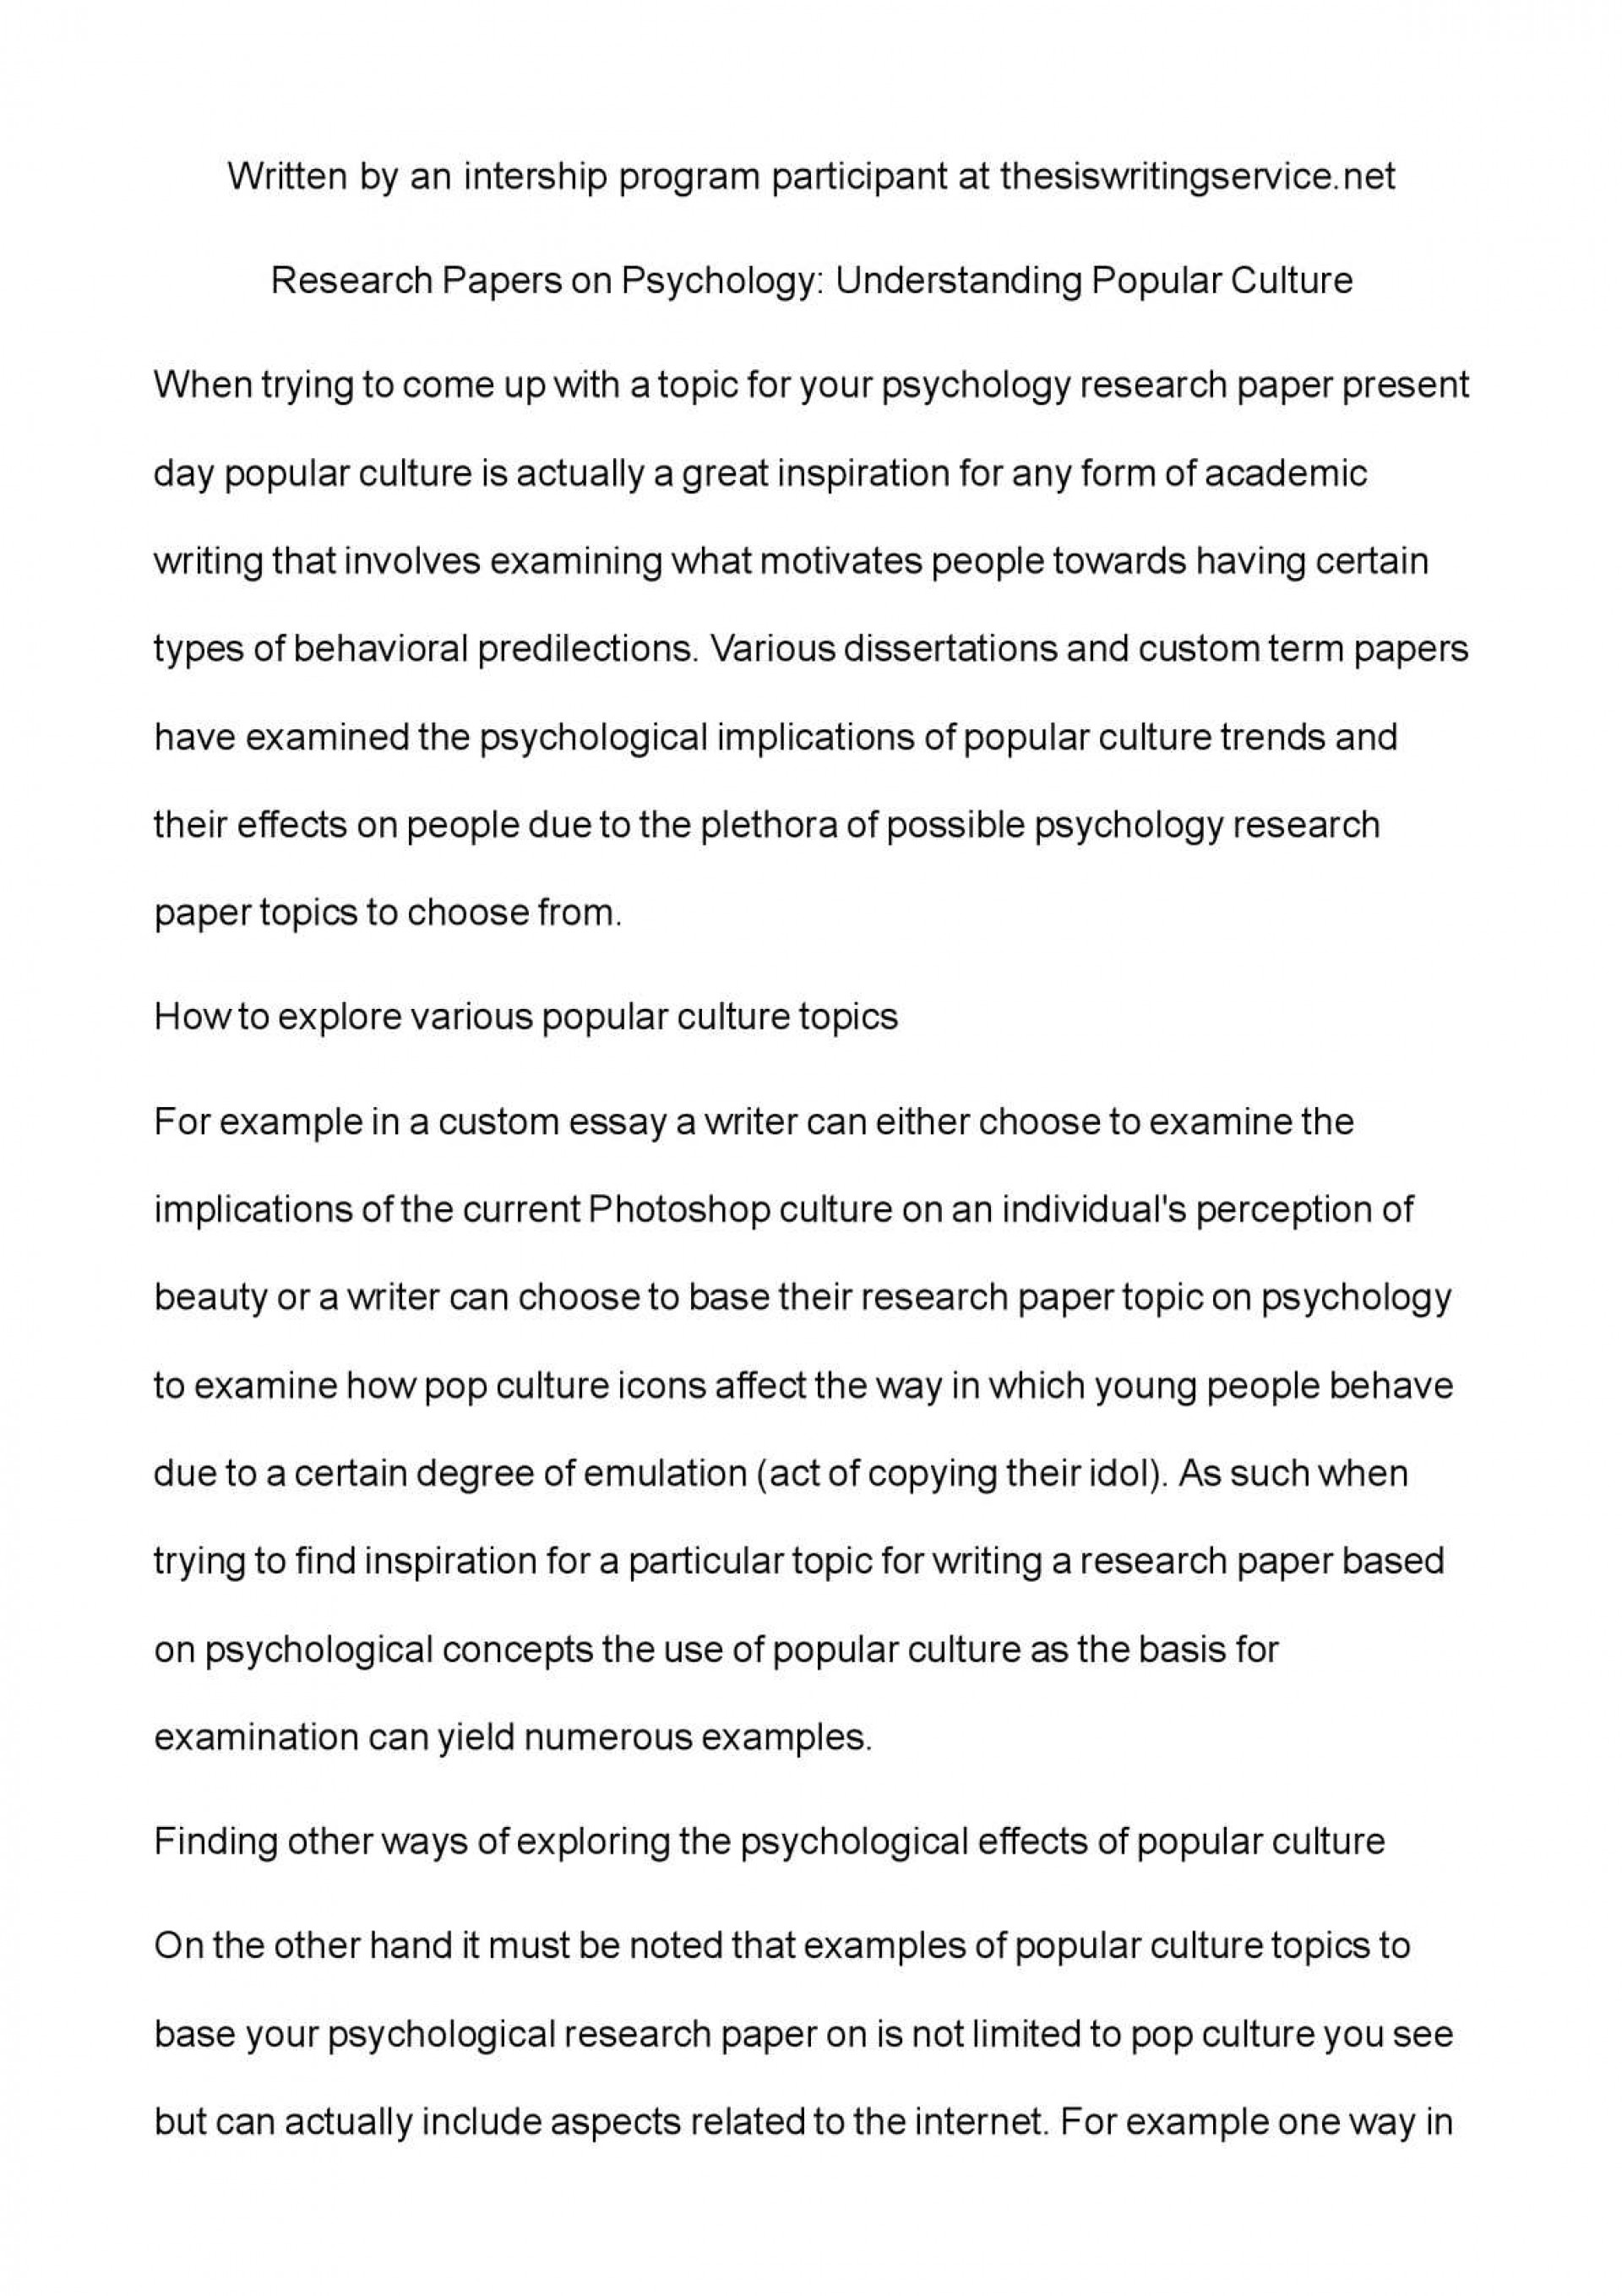 003 P1 Research Paper Cultural Psychology Topics Sensational For 1920